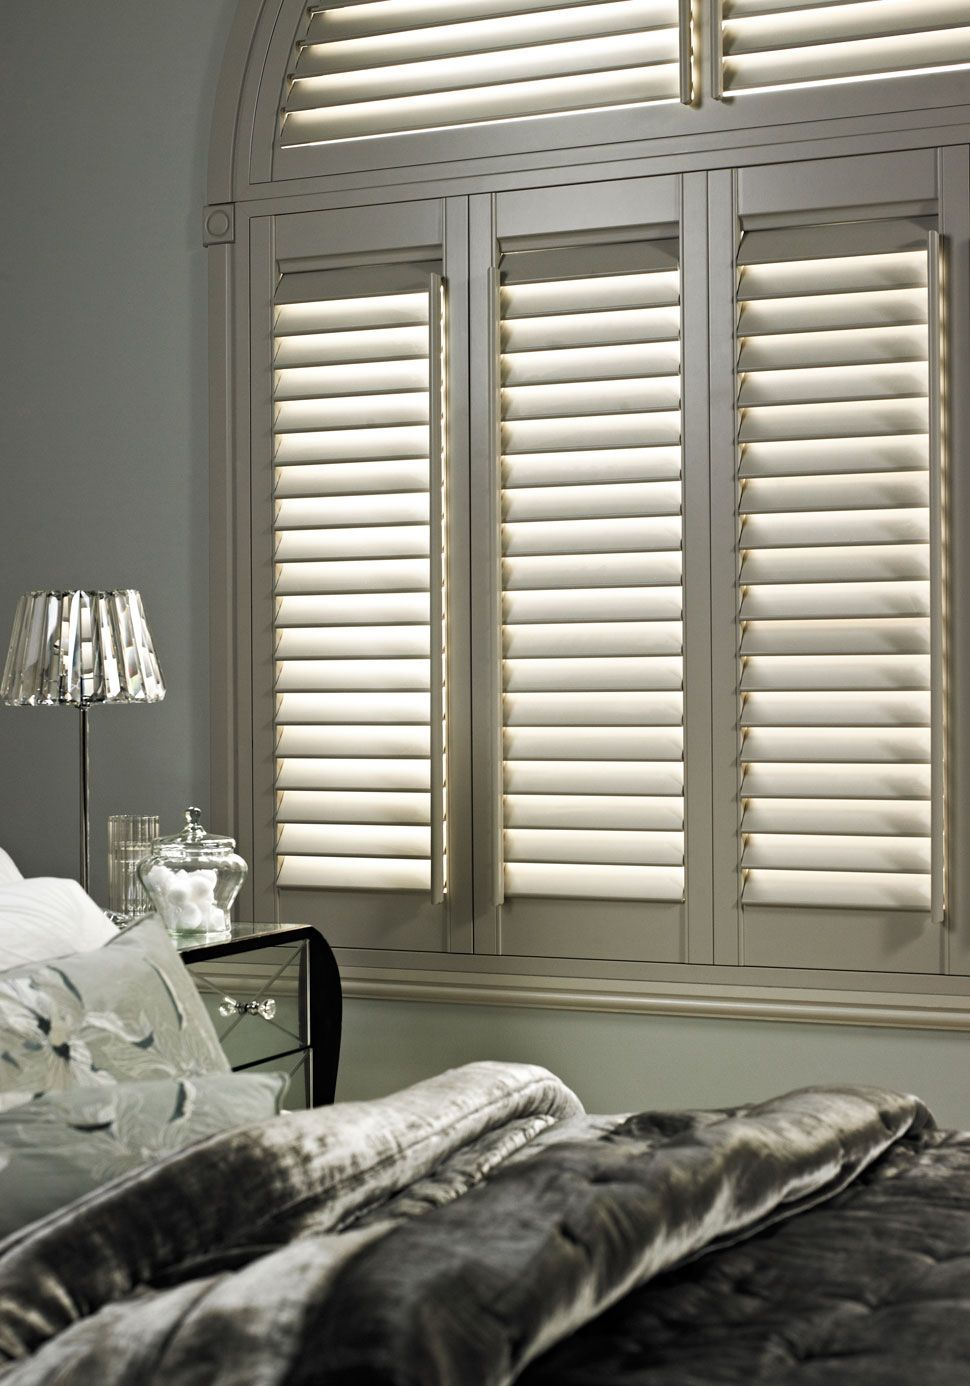 Our exclusive collection of laura ashley window shutters get your